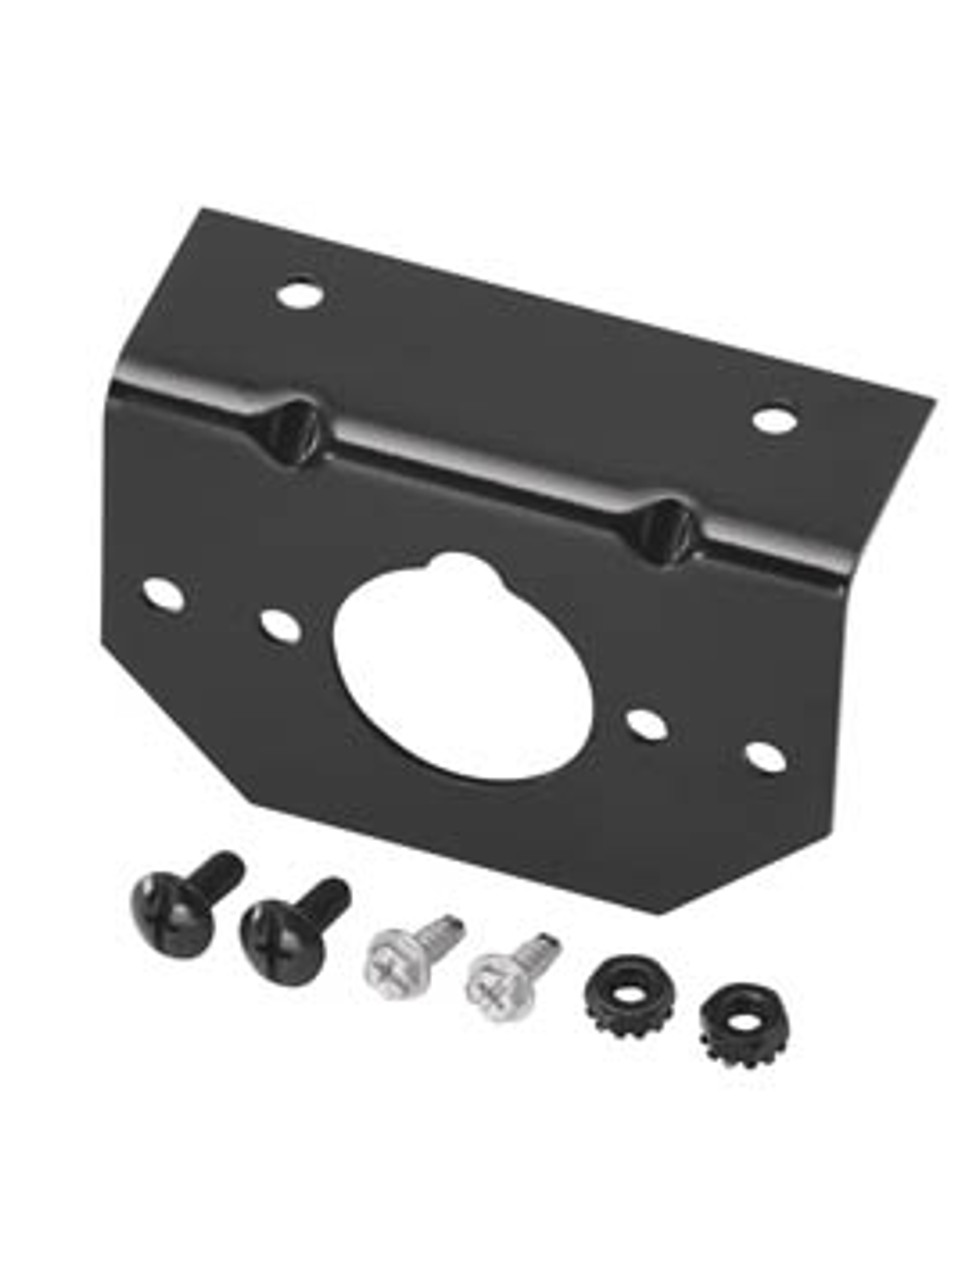 118137 --- Mounting Bracket for 4, 5 & 6-Way Round Connectors